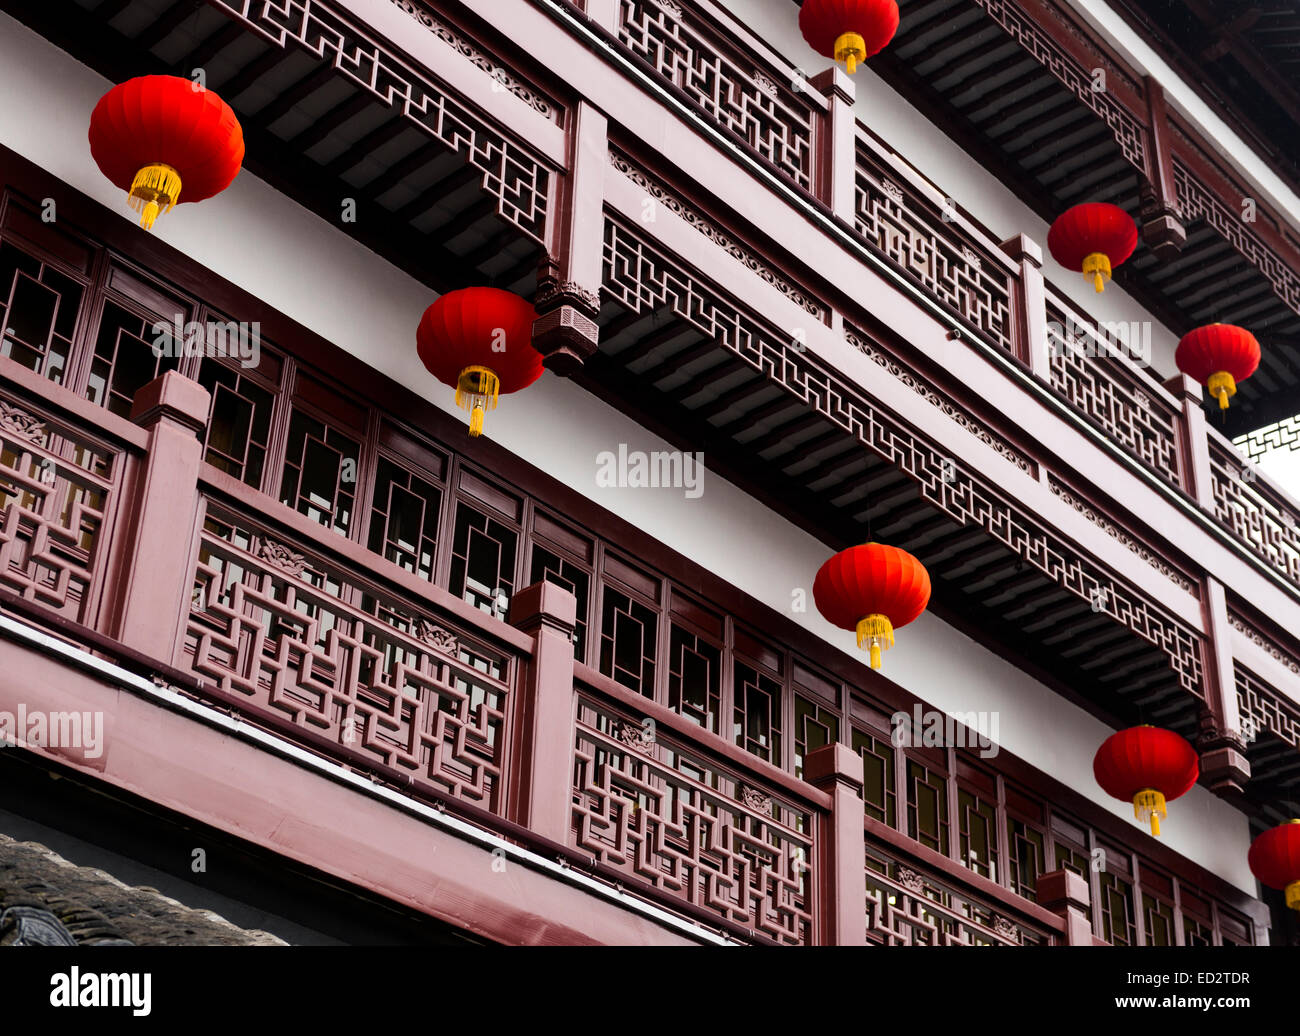 Red lanterns and traditional architecture details of the Old city of Shanghai, China - Stock Image